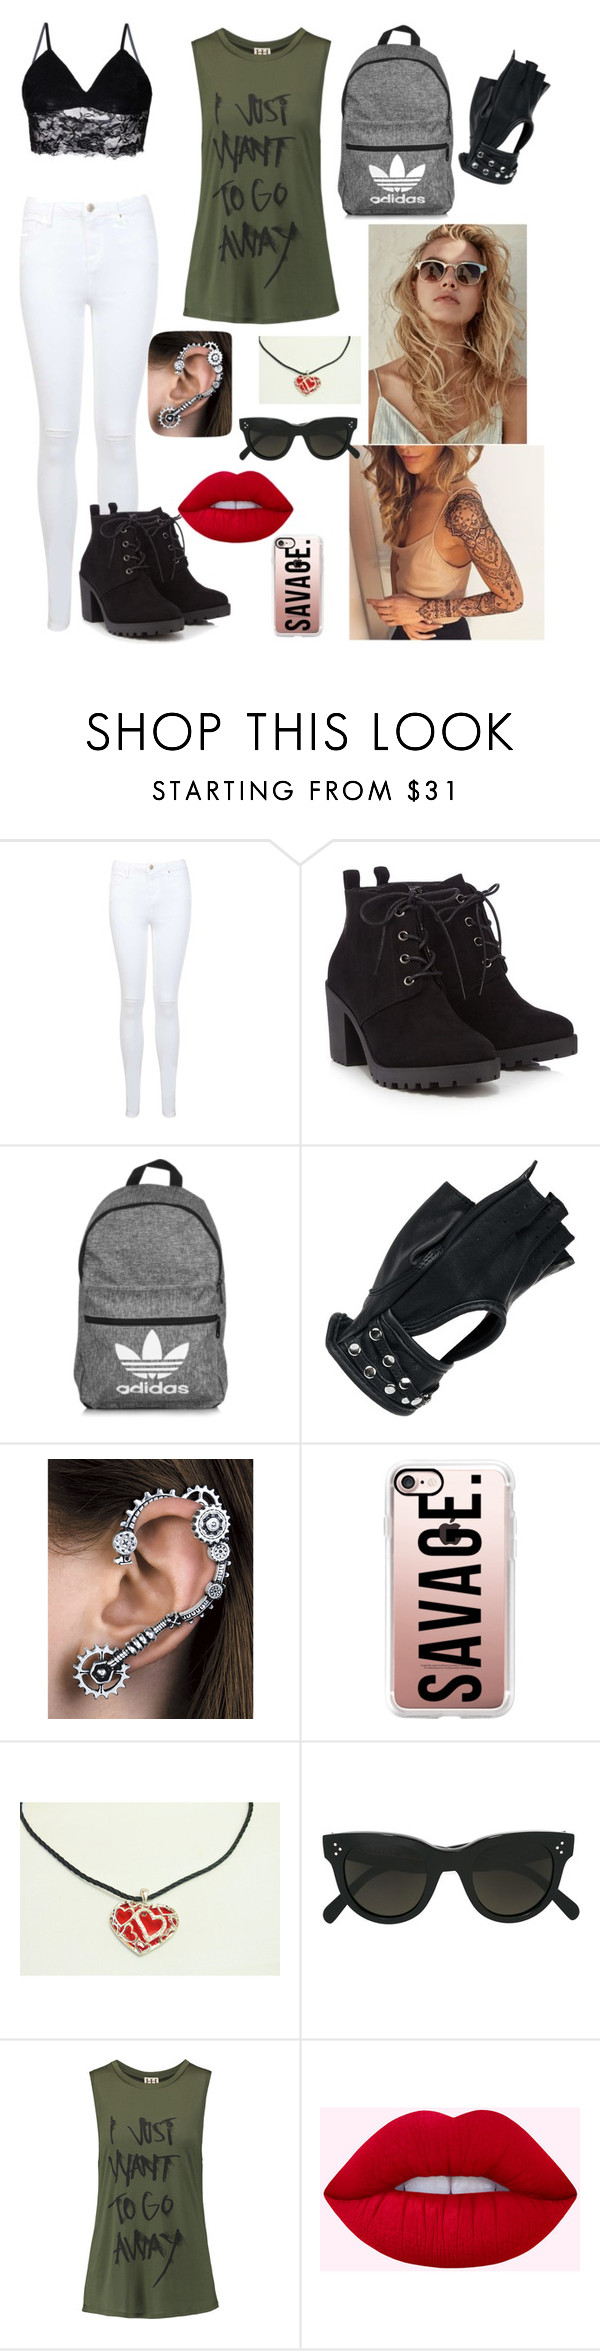 """""""Relax day"""" by angelknipp ❤ liked on Polyvore featuring Miss Selfridge, Red Herring, adidas, Wilsons Leather, WWE, Casetify, CÉLINE and Haute Hippie"""